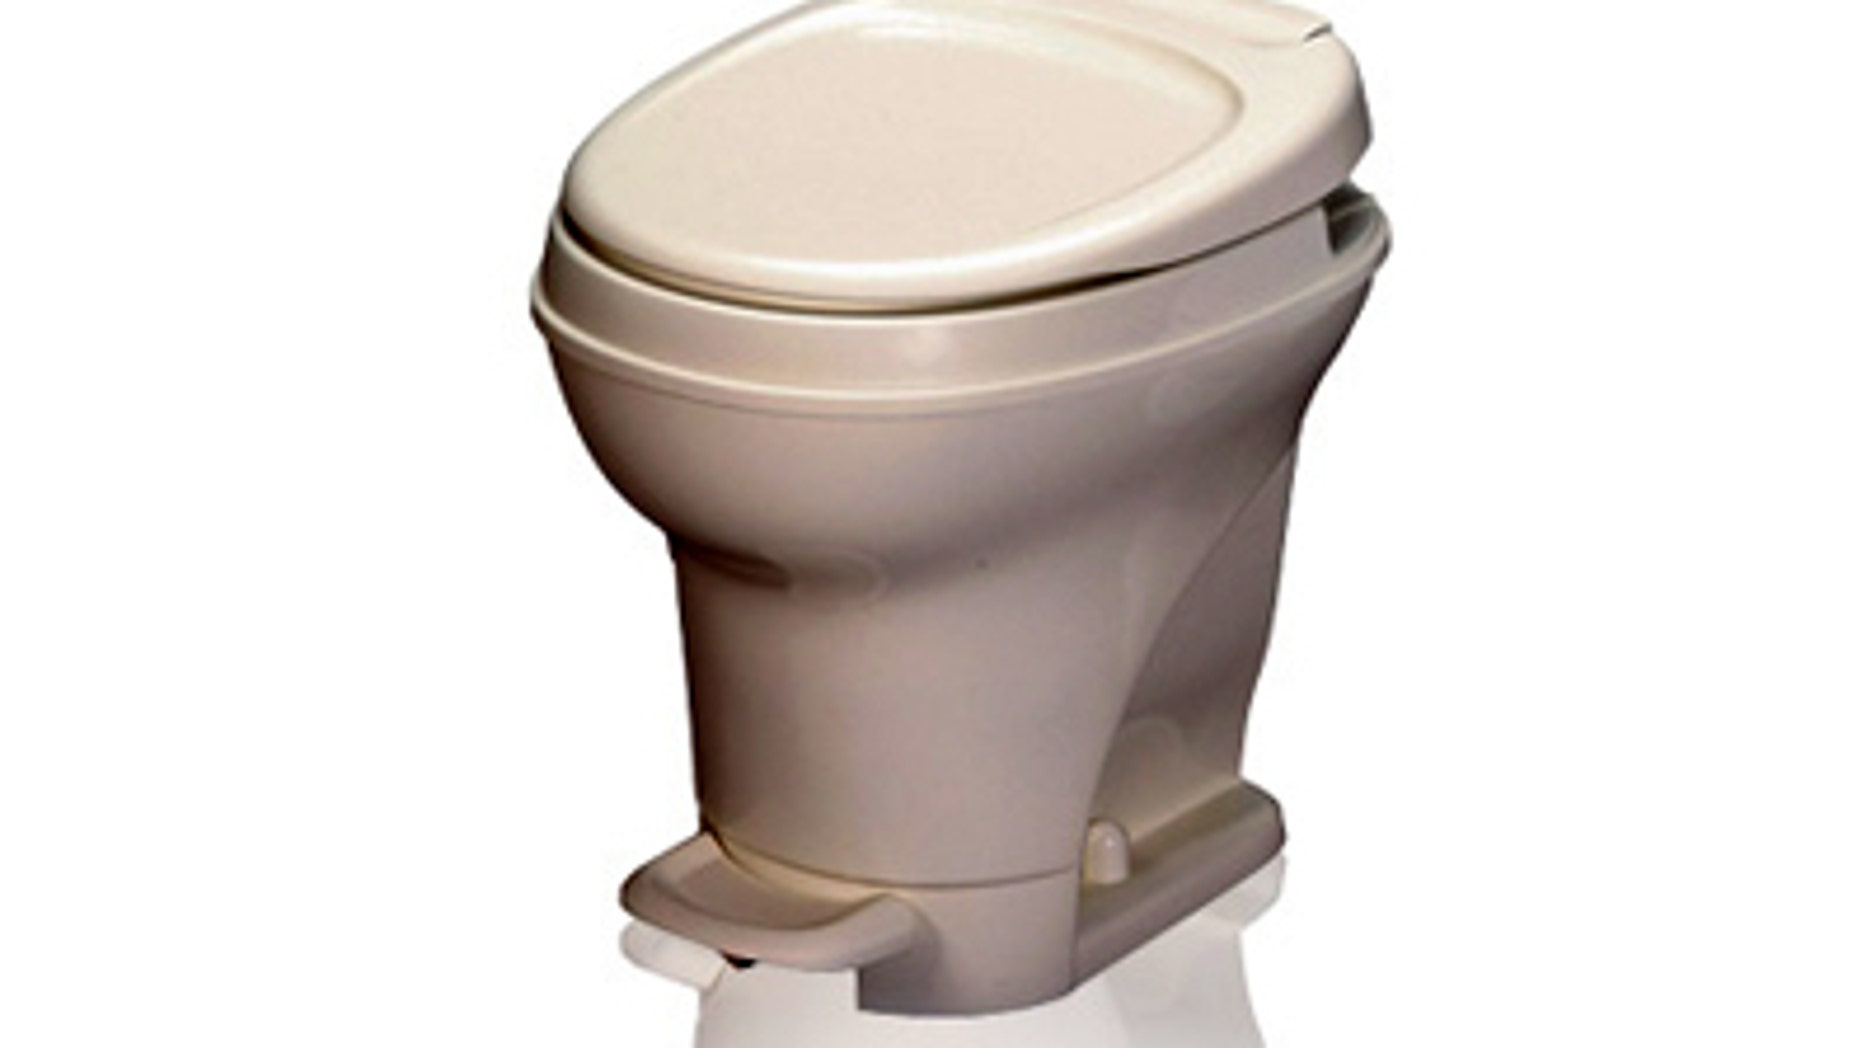 3 Ways to Convert Your Toilet to Hands Free Flushing | Fox News